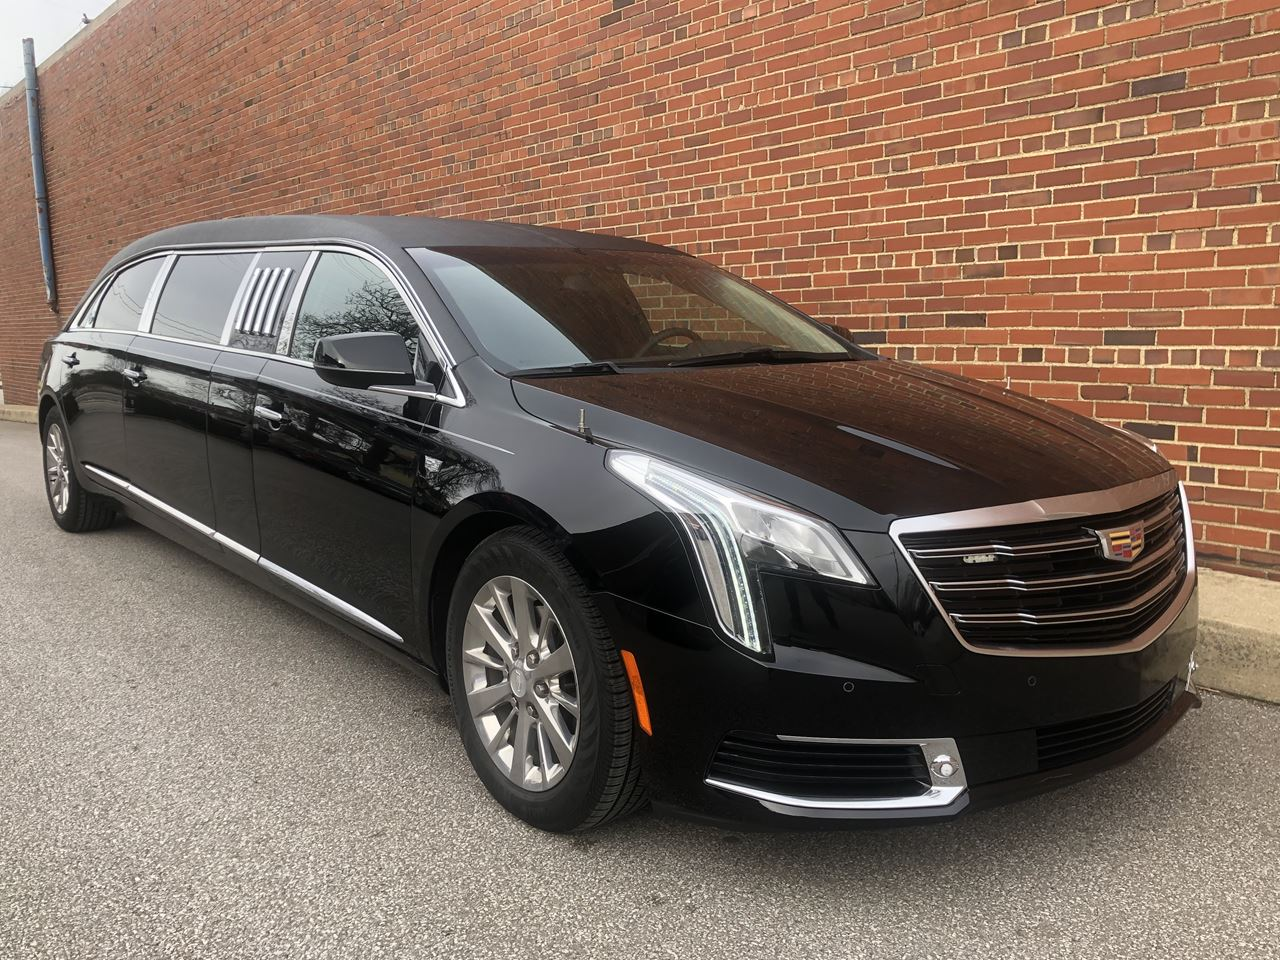 2019 Cadillac SS 70 Stretch Limousine 402 2